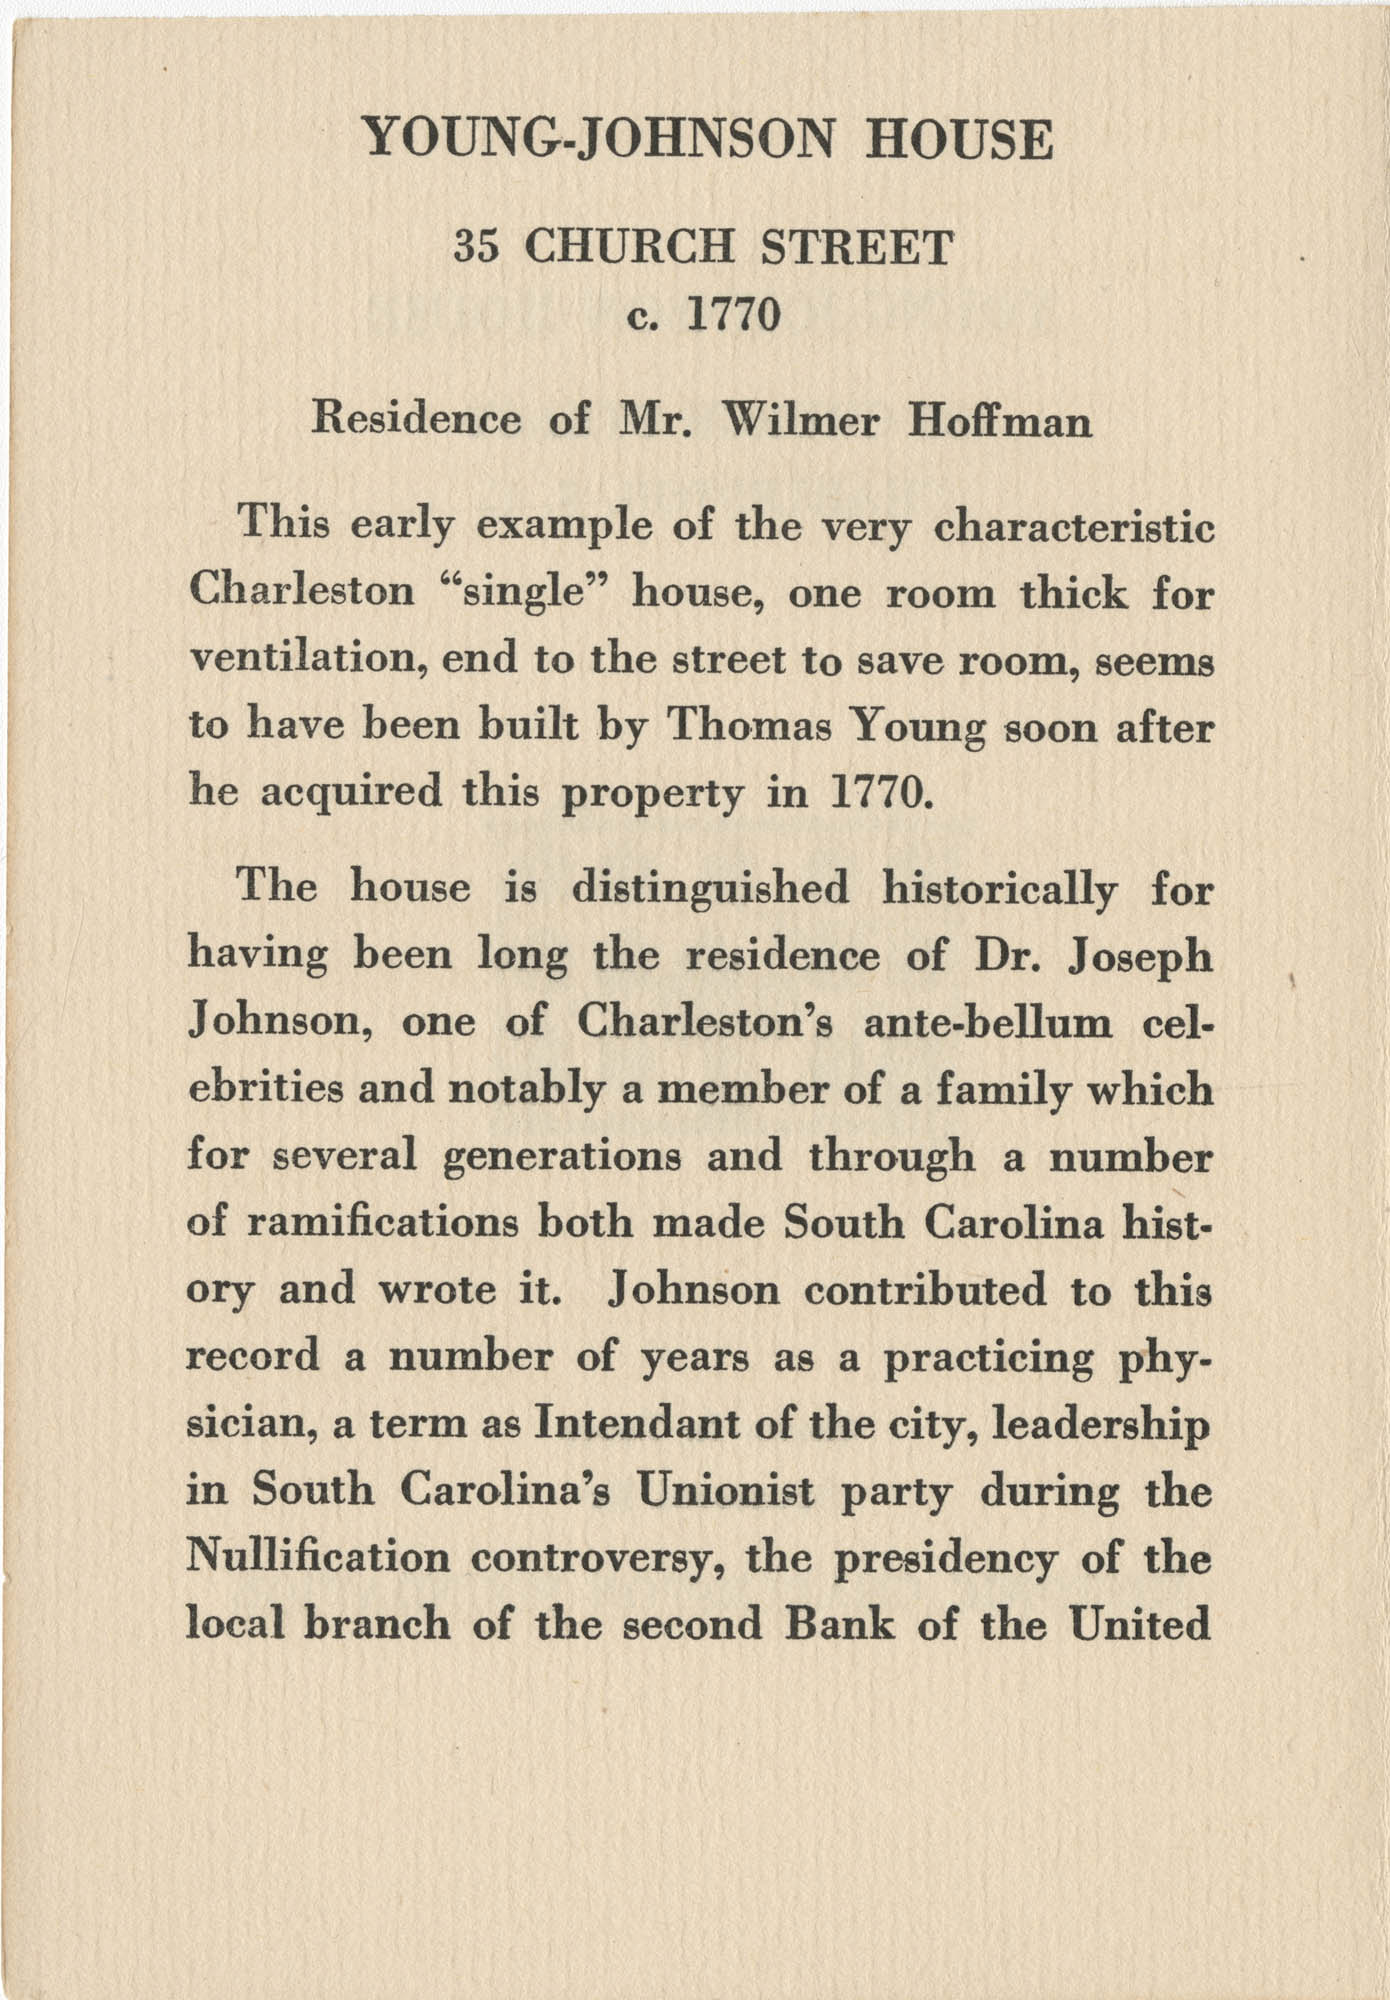 Young-Johnson House Page 1